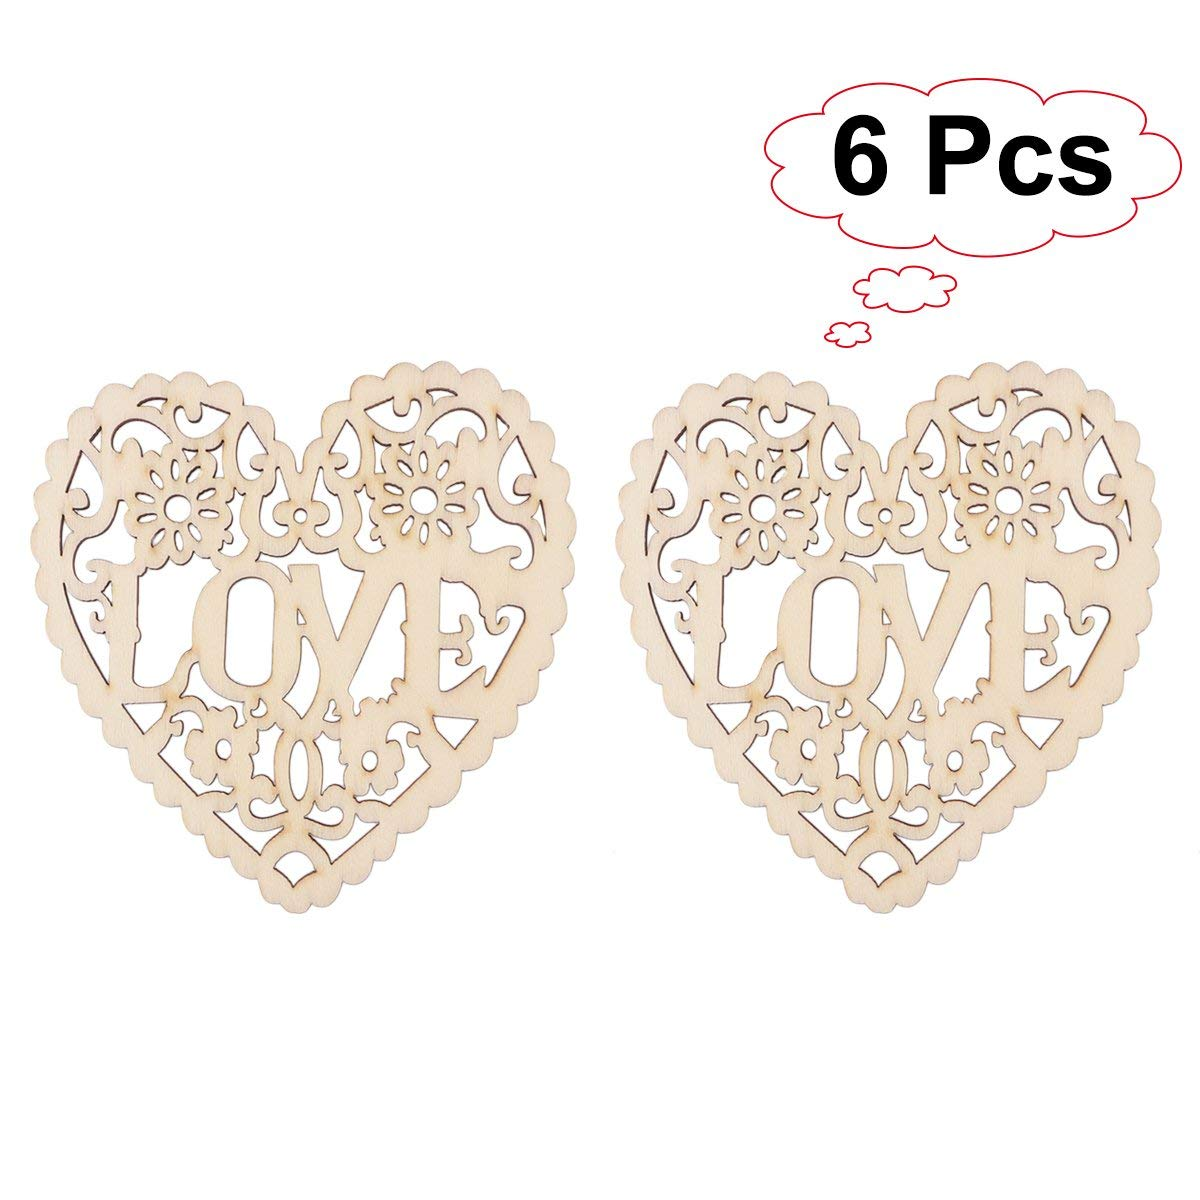 LUOEM 6PCS Wooden Crafts Embellishment Hollow Heart Cutout Veneers Slices For DIY Crafting Christmas Tree Hanging Ornament Decoration Pendants With String